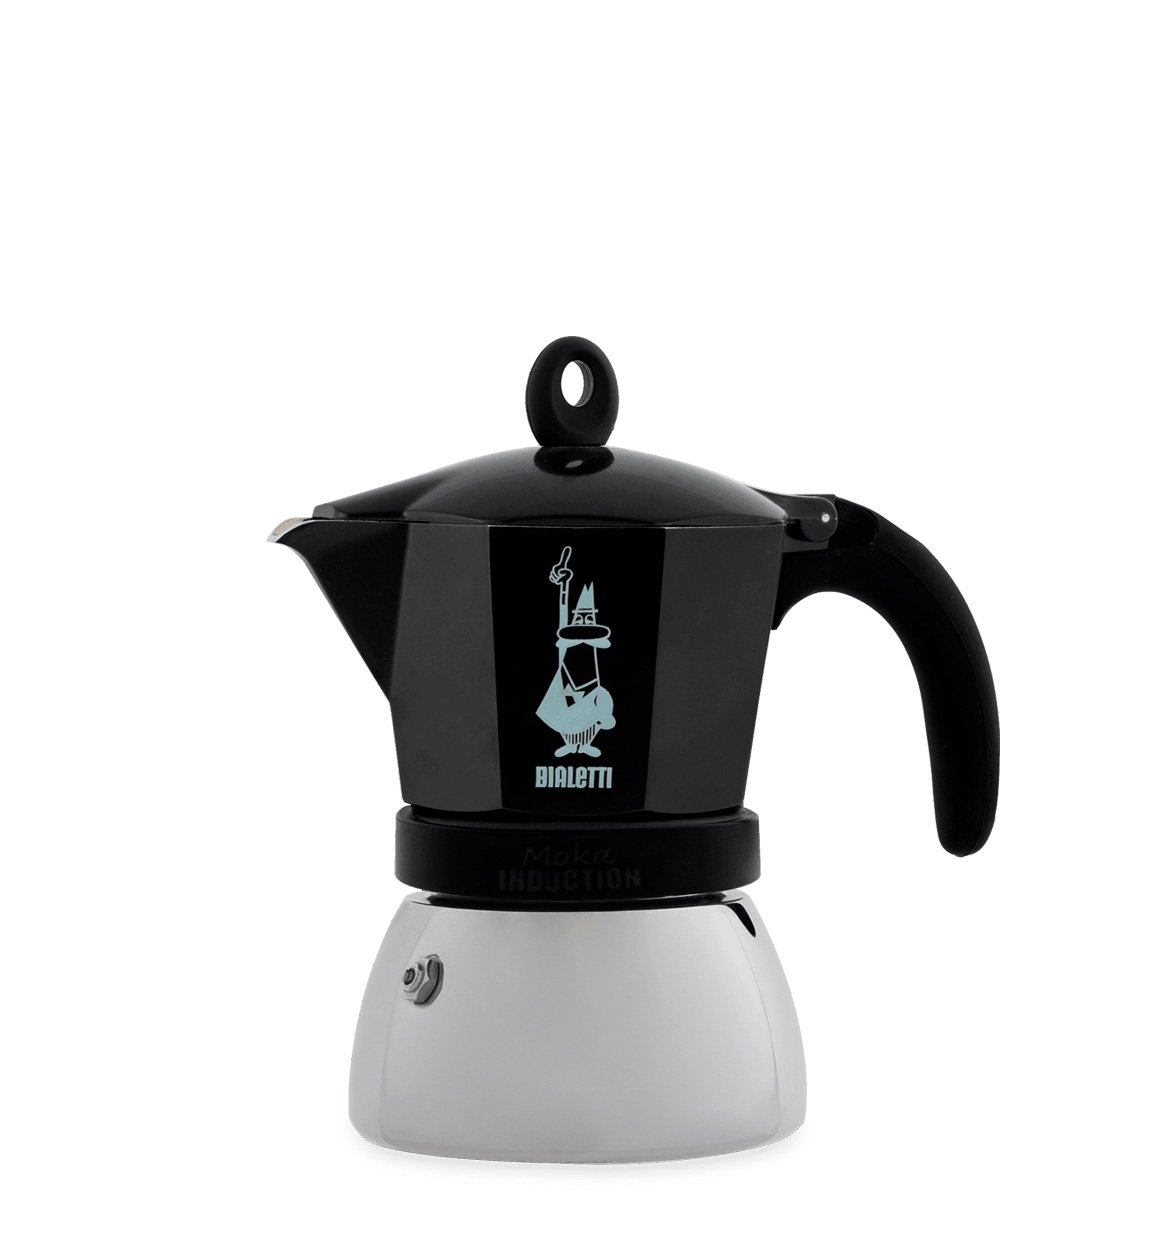 Cafetera Italiana Bialetti Moka Induction Negra 3 Tazas